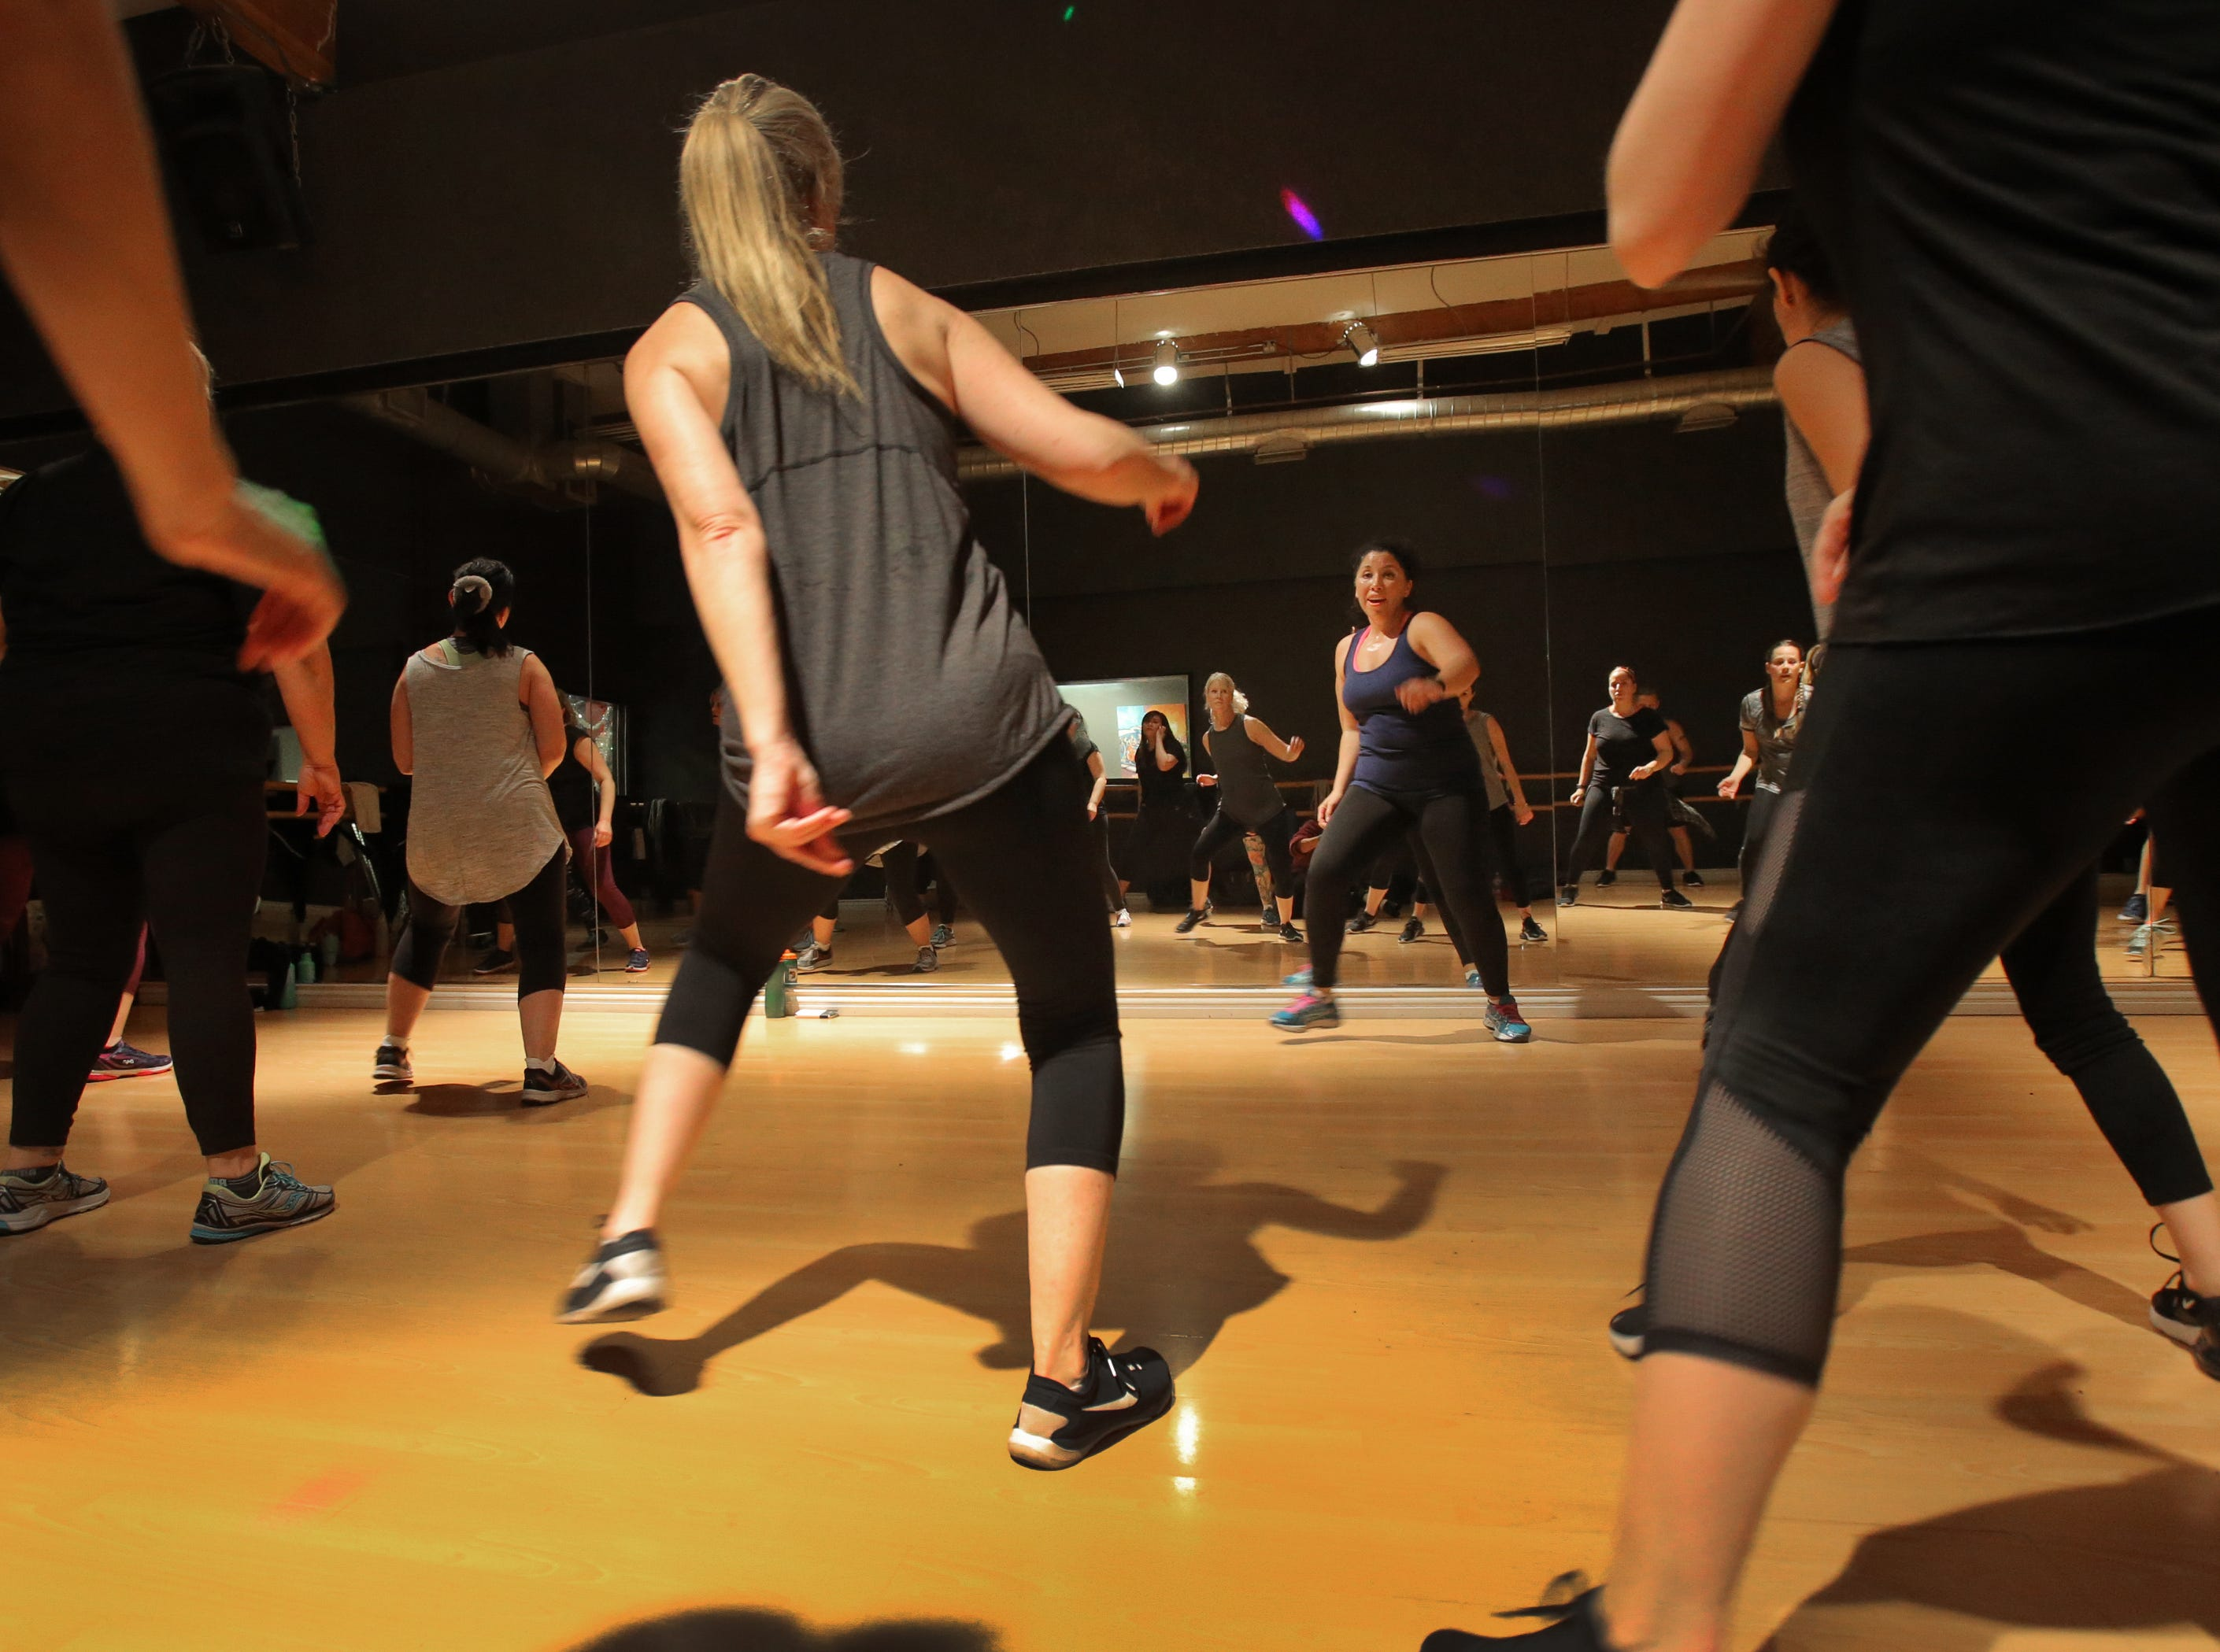 Santa Clarita instructor Kathryn Haven, center, leads a PlyoJam workout dance class at RockIt Dance Studio in Westlake Village. The dance-inspired fitness program is designed to appeal to people of all shapes, sizes, ages, athletic ability and gender